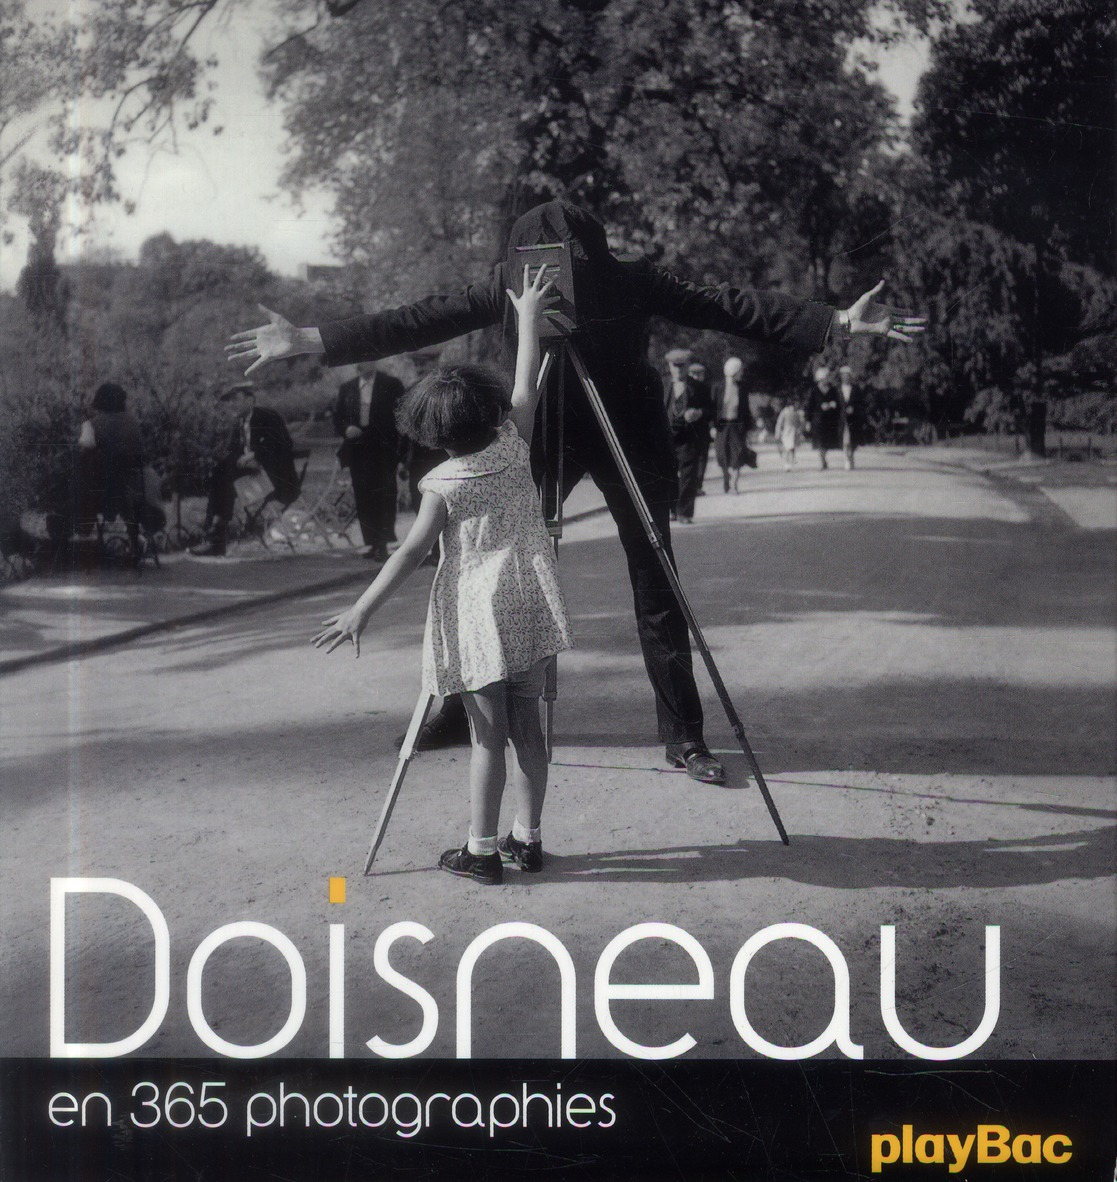 Robert doisneau en 365 photos